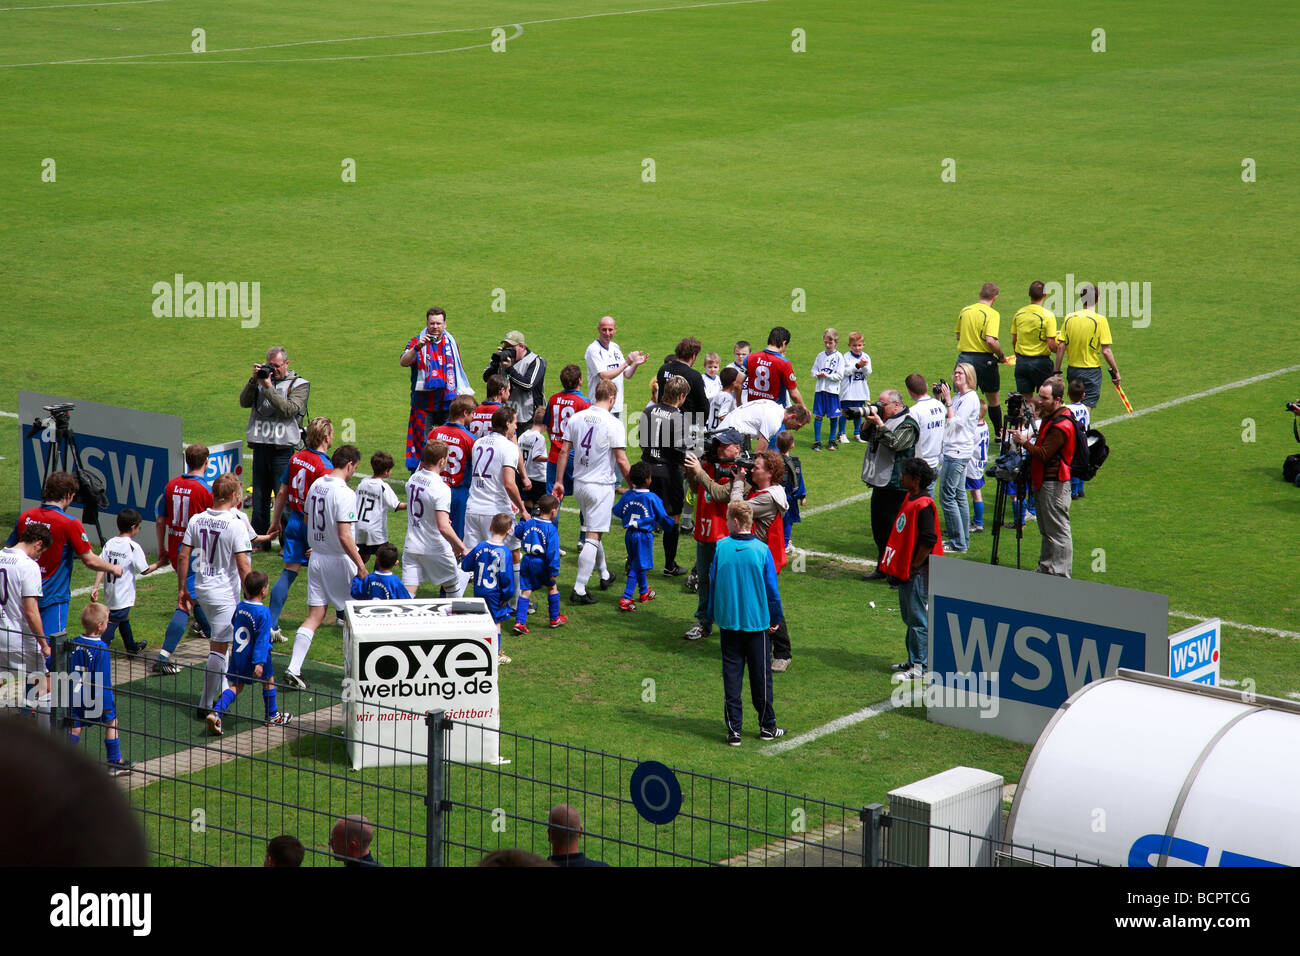 D-Wuppertal, Wupper, Bergisches Land, North Rhine-Westphalia, sports, football, 3rd Liga, 2008/2009, Wuppertaler - Stock Image